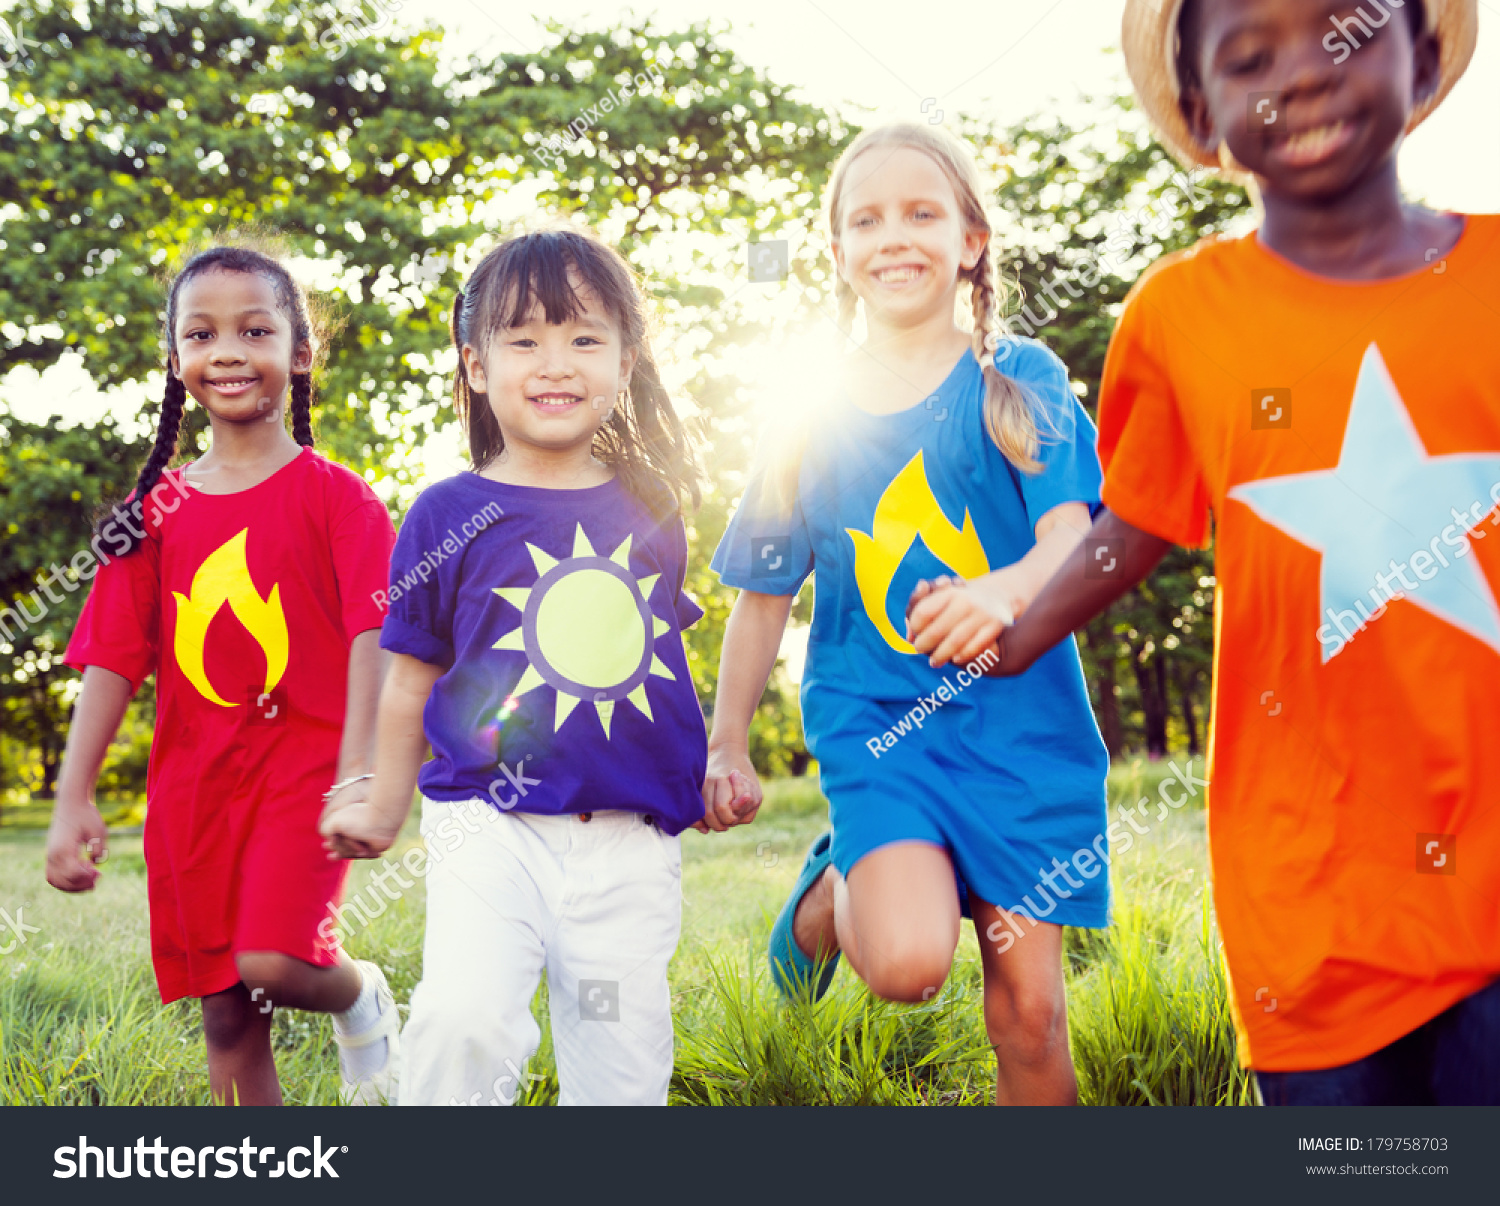 Friendship: Diverse Children Playing Super Heroes In Park Stock Photo ...